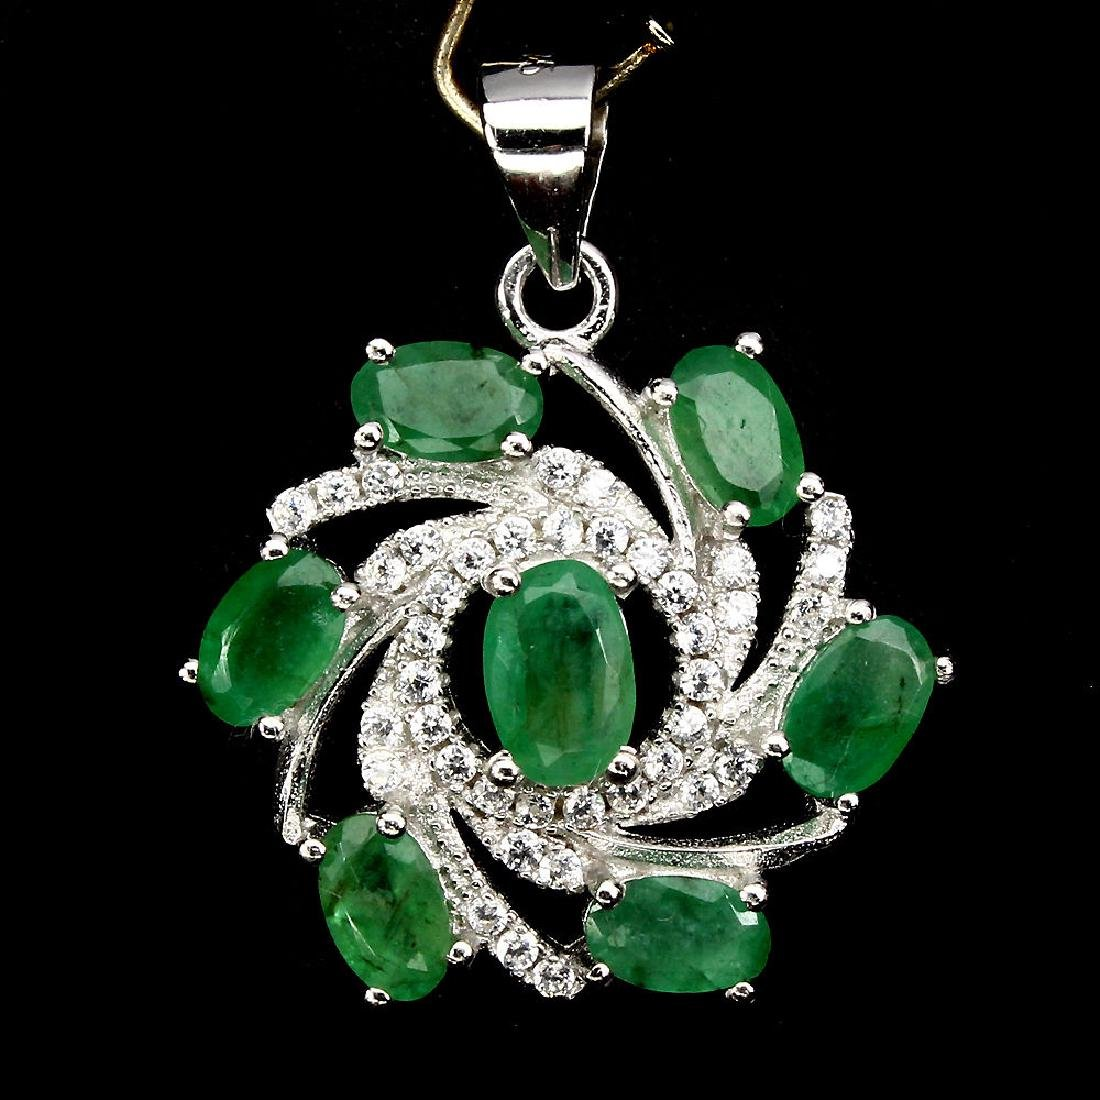 Natural Emerald Earrings & Pendant 48 Carats Set - 2